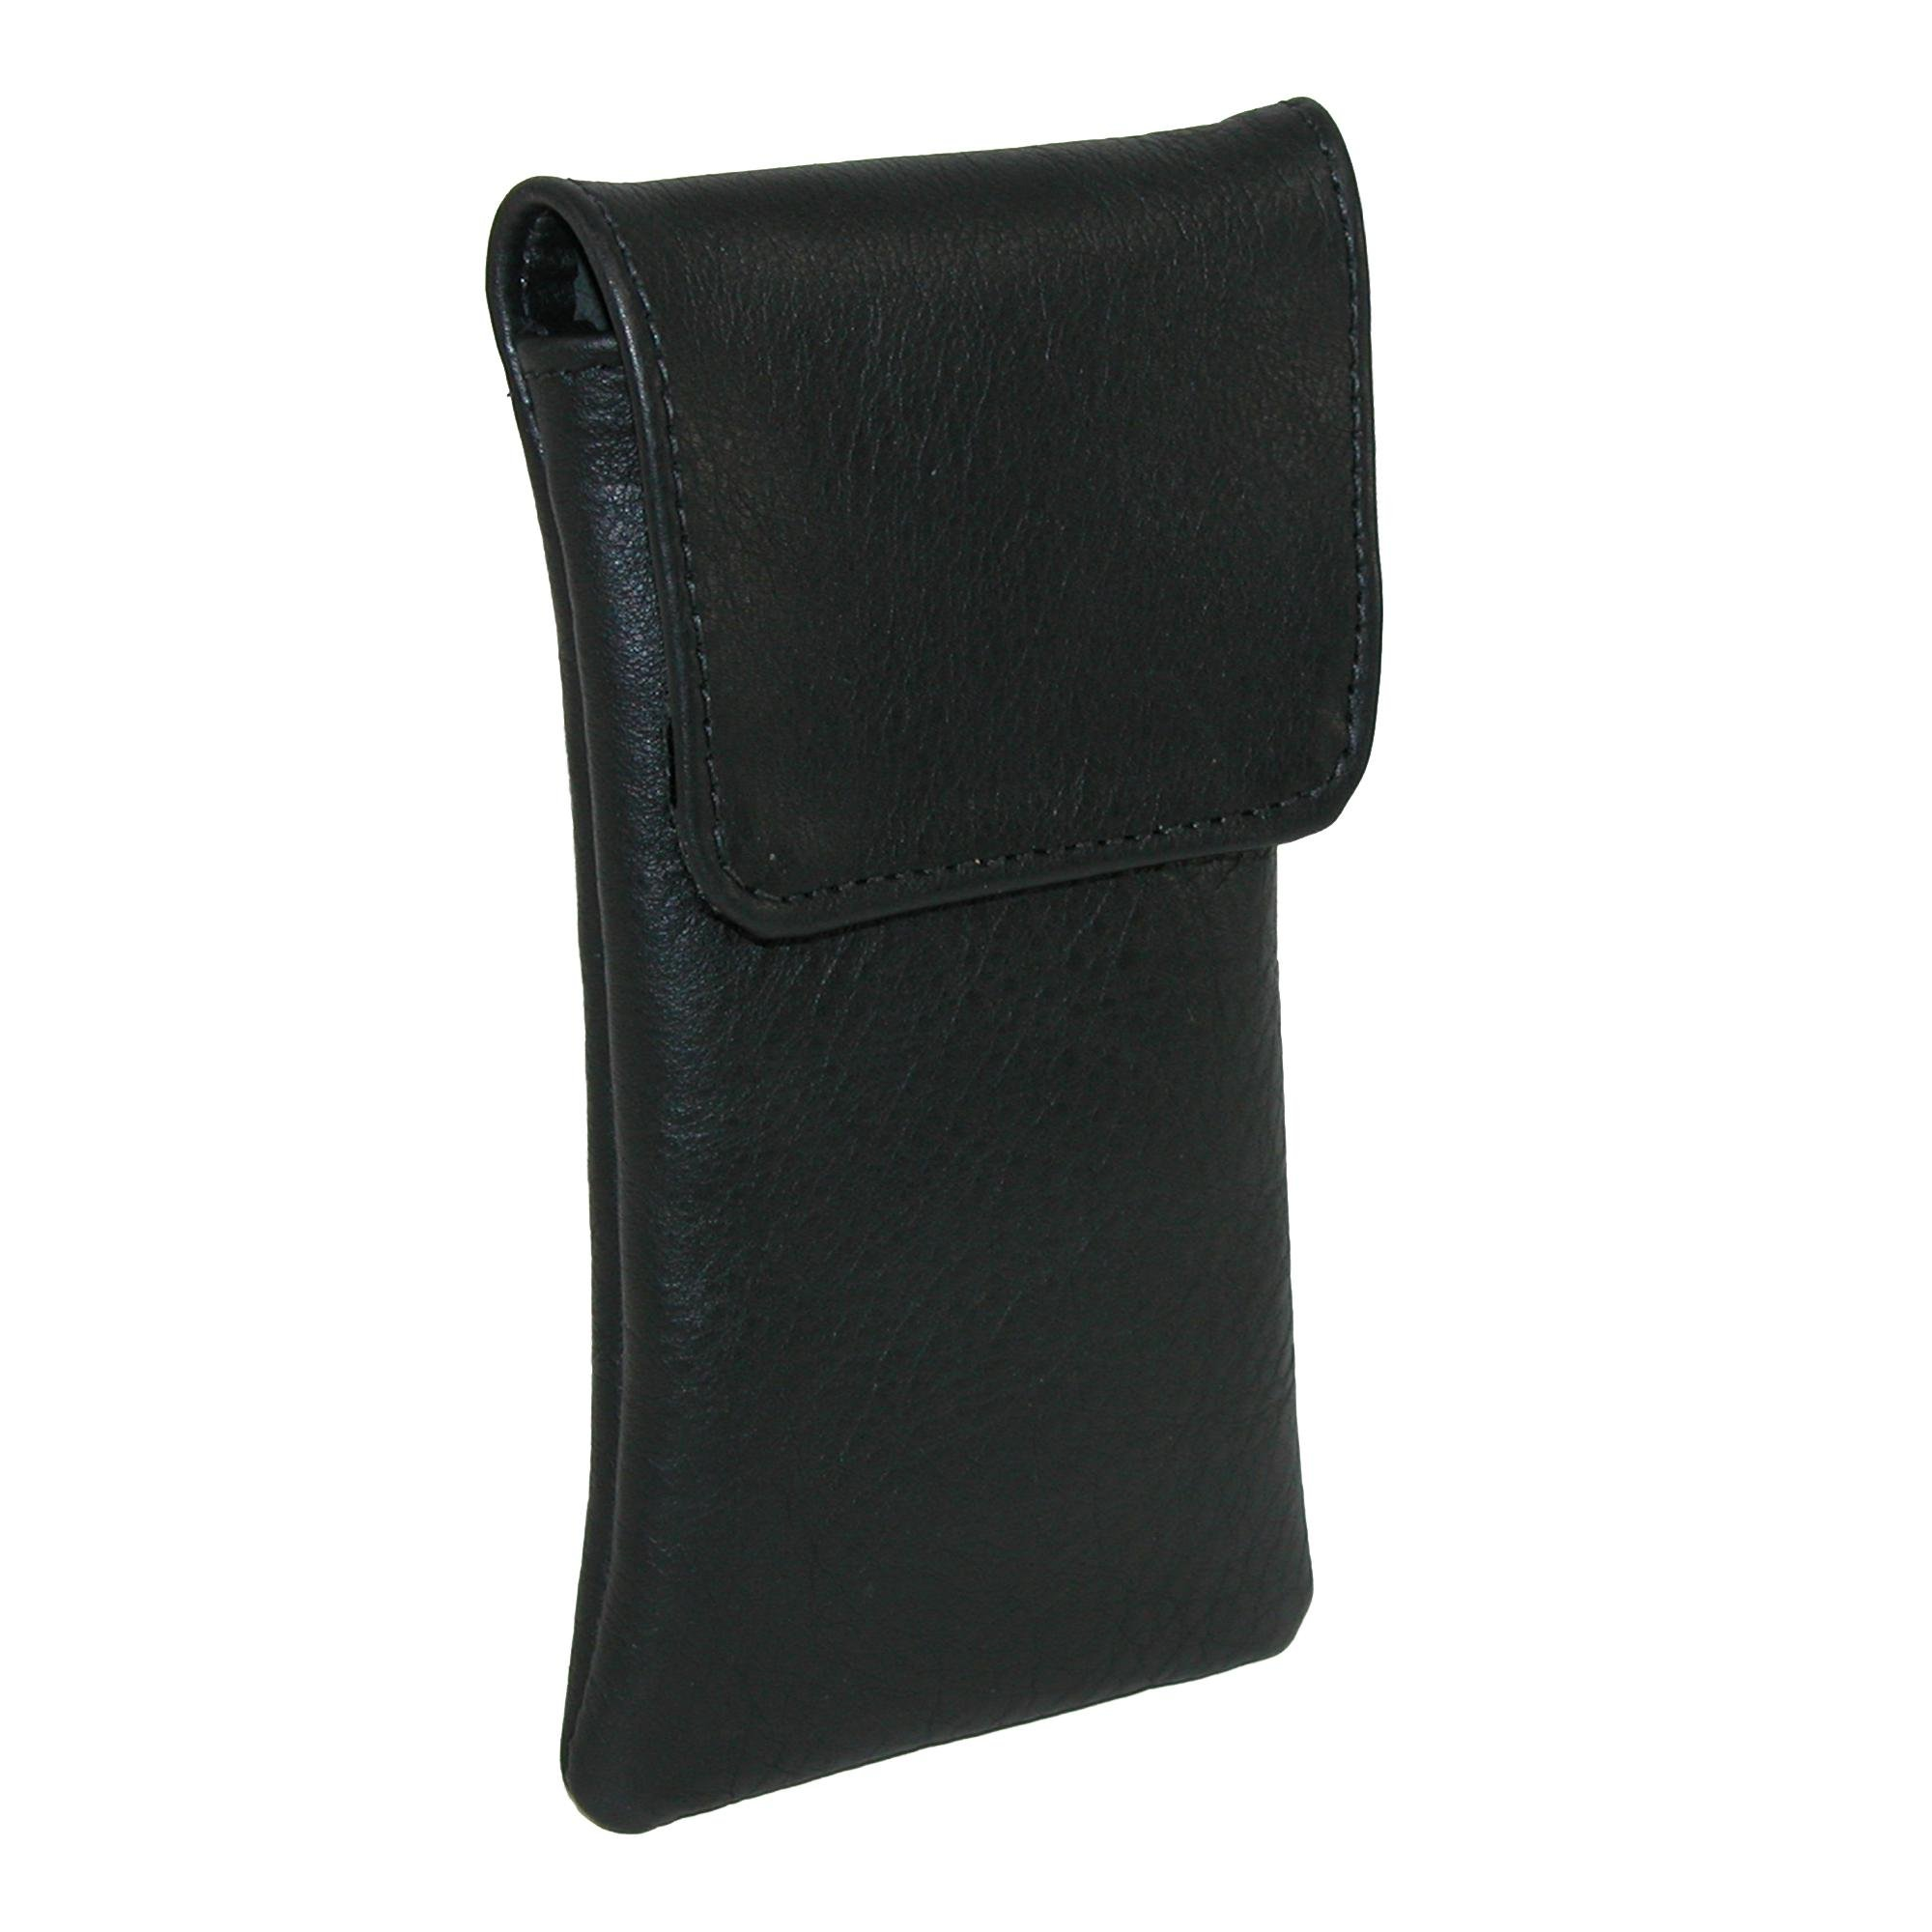 CTM Leather Soft Eyeglass Case with Holster Clip, Black